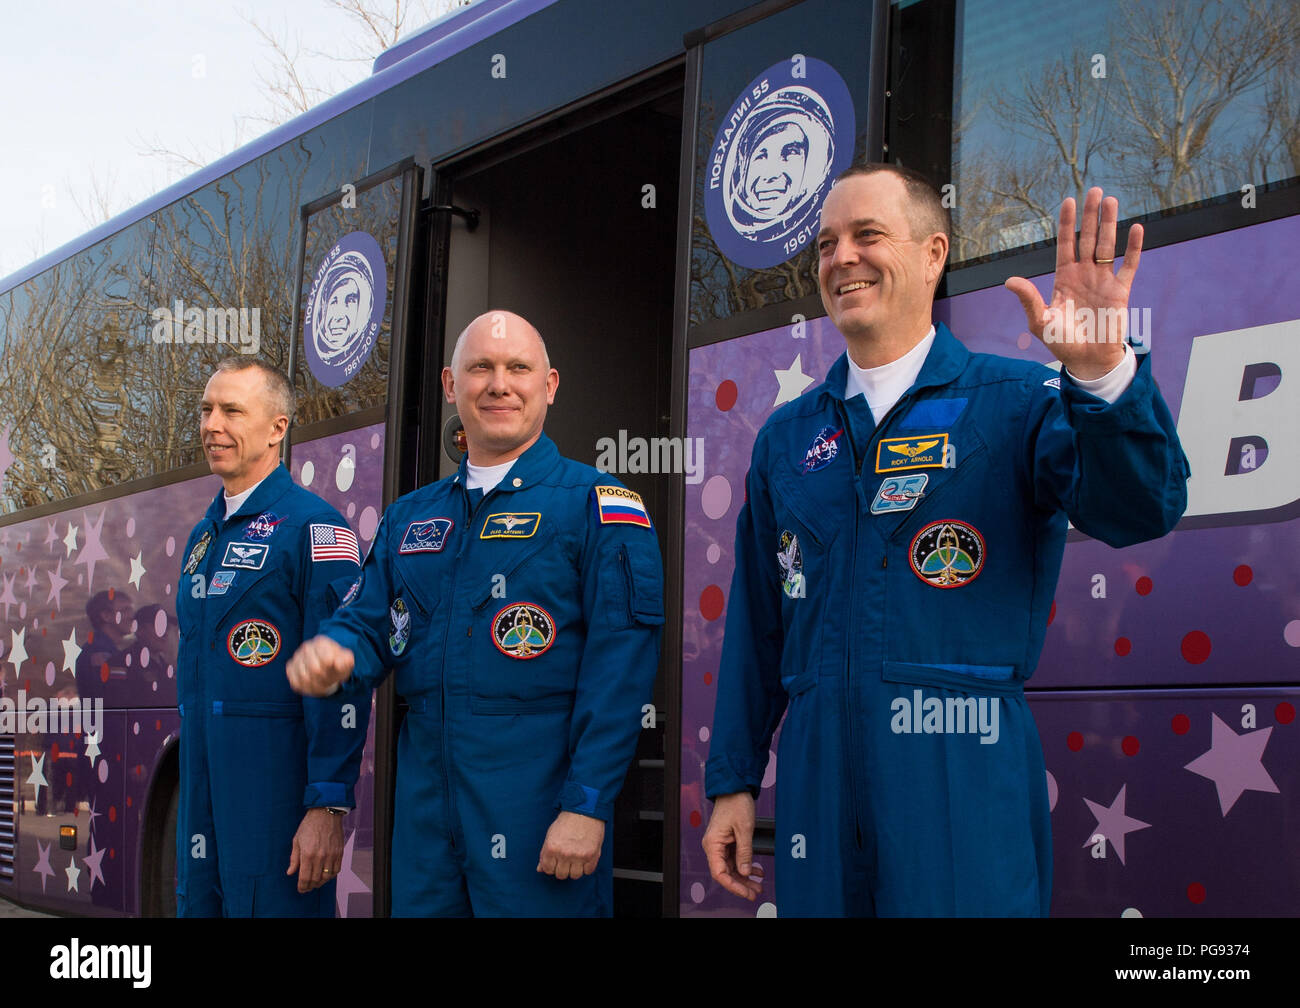 Expedition 55 flight engineer Drew Feustel of NASA, left, Soyuz Commander Oleg Artemyev of Roscosmos, center, and flight engineer Ricky Arnold of NASA, right, wave farewell to family and friends as they depart the Cosmonaut Hotel to suit-up for their Soyuz launch to the International Space Station, Wednesday, March 21, 2018 in Baikonur, Kazakhstan. Launch of the Soyuz MS-08 is scheduled for 1:44 p.m. Eastern Time (11:44 p.m. Baikonur time) on March 21 and will send Feustel, Artemyev, and Arnold on a five month mission aboard the International Space Station. - Stock Image